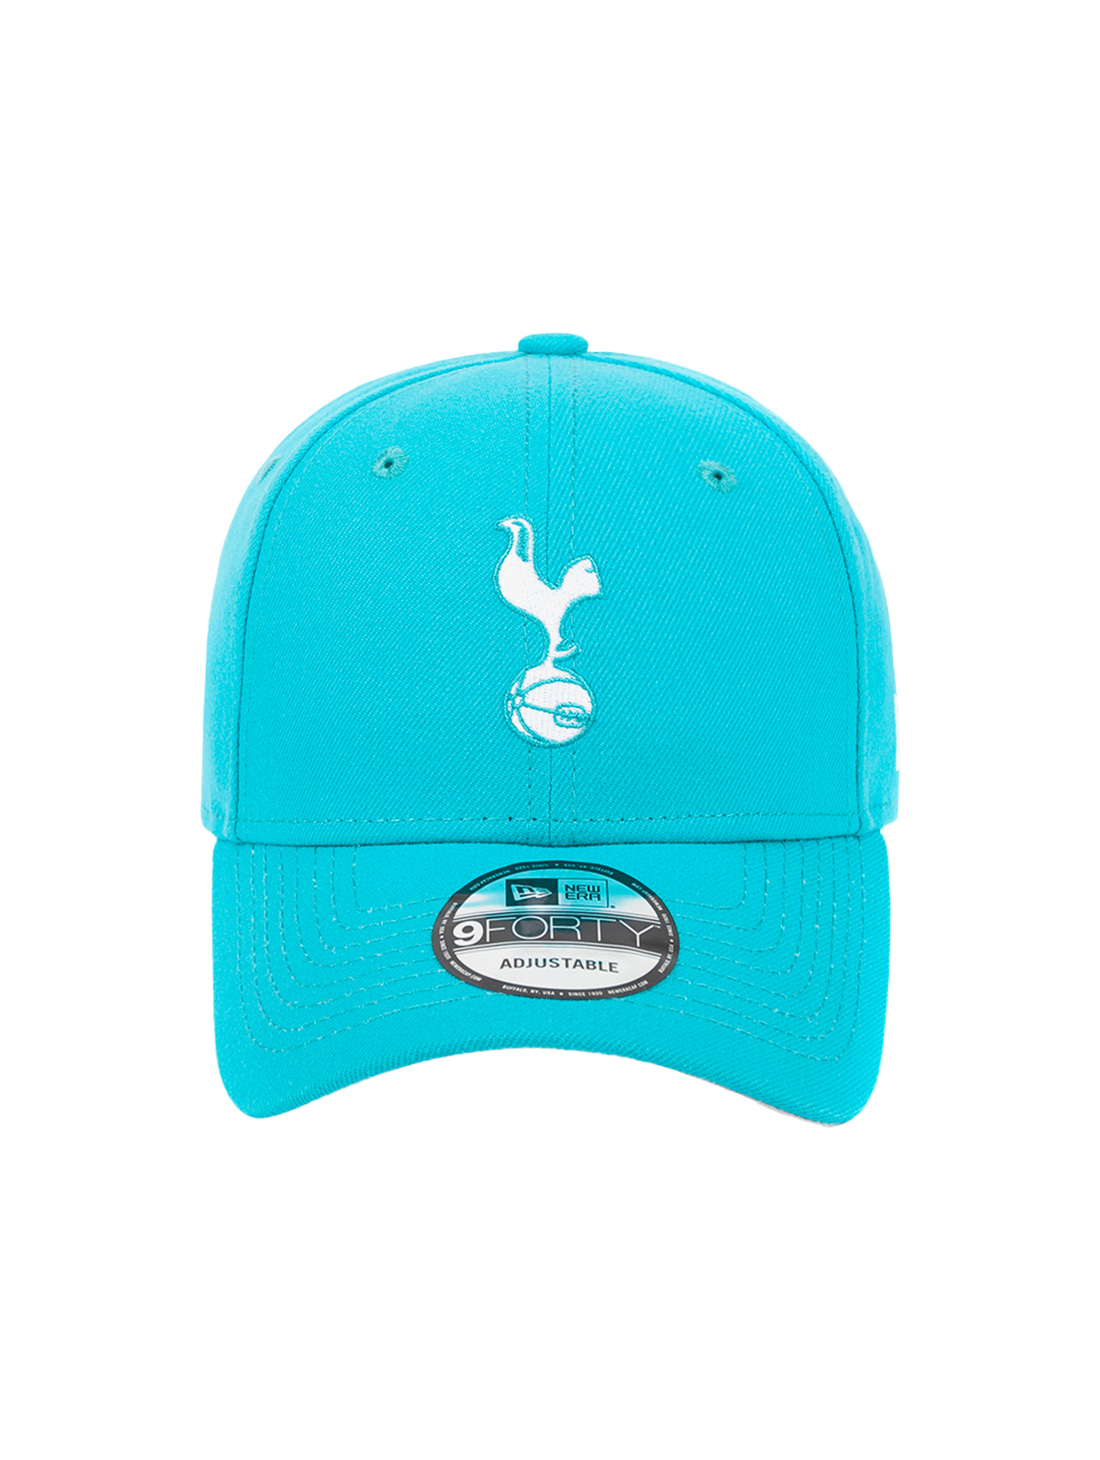 GOALSTUDIO TOTTENHAM 940 BALL CAP - BLUE